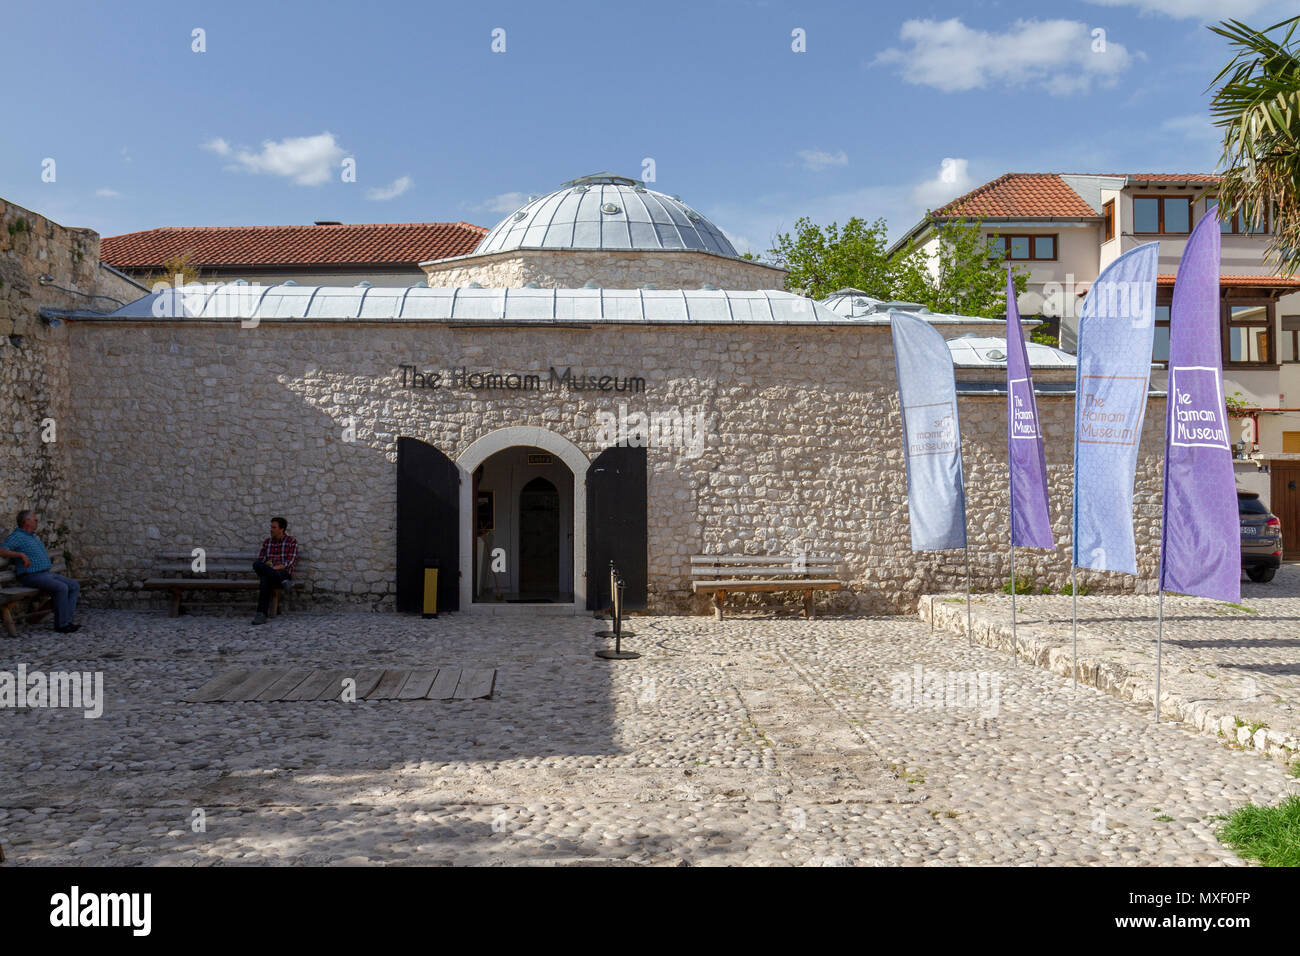 The Hamam Museum in Mostar, the Federation of Bosnia and Herzegovina. - Stock Image